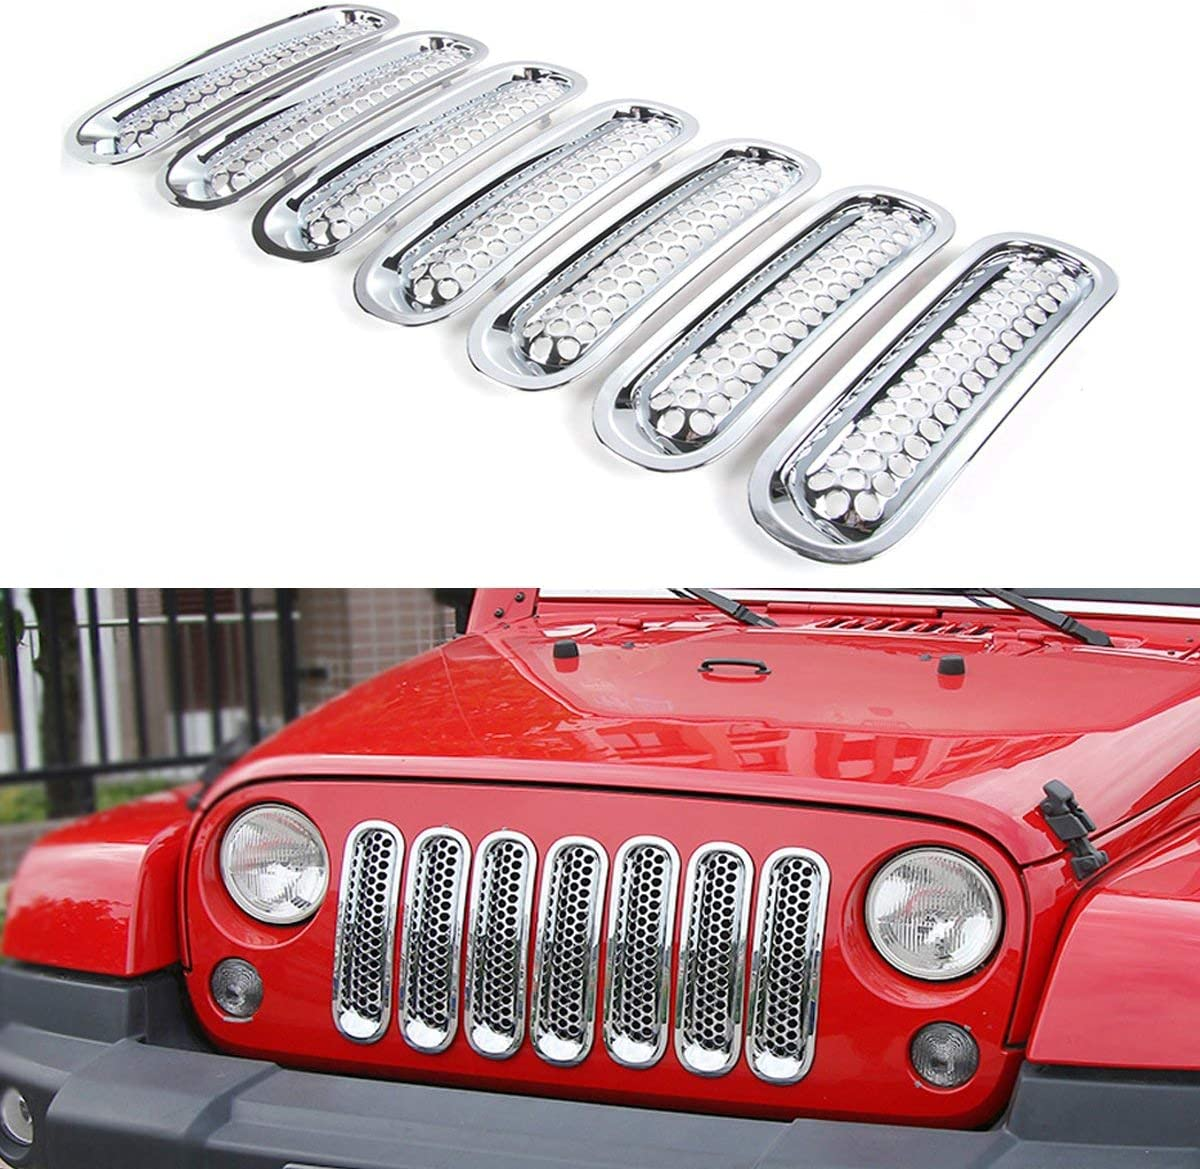 Athiry Car Front Mesh Grill Inserts Grilles Cover for Wrangler JK 2007-2015 Unlimited Sport Rubicon Sahara Pack of 7 Black